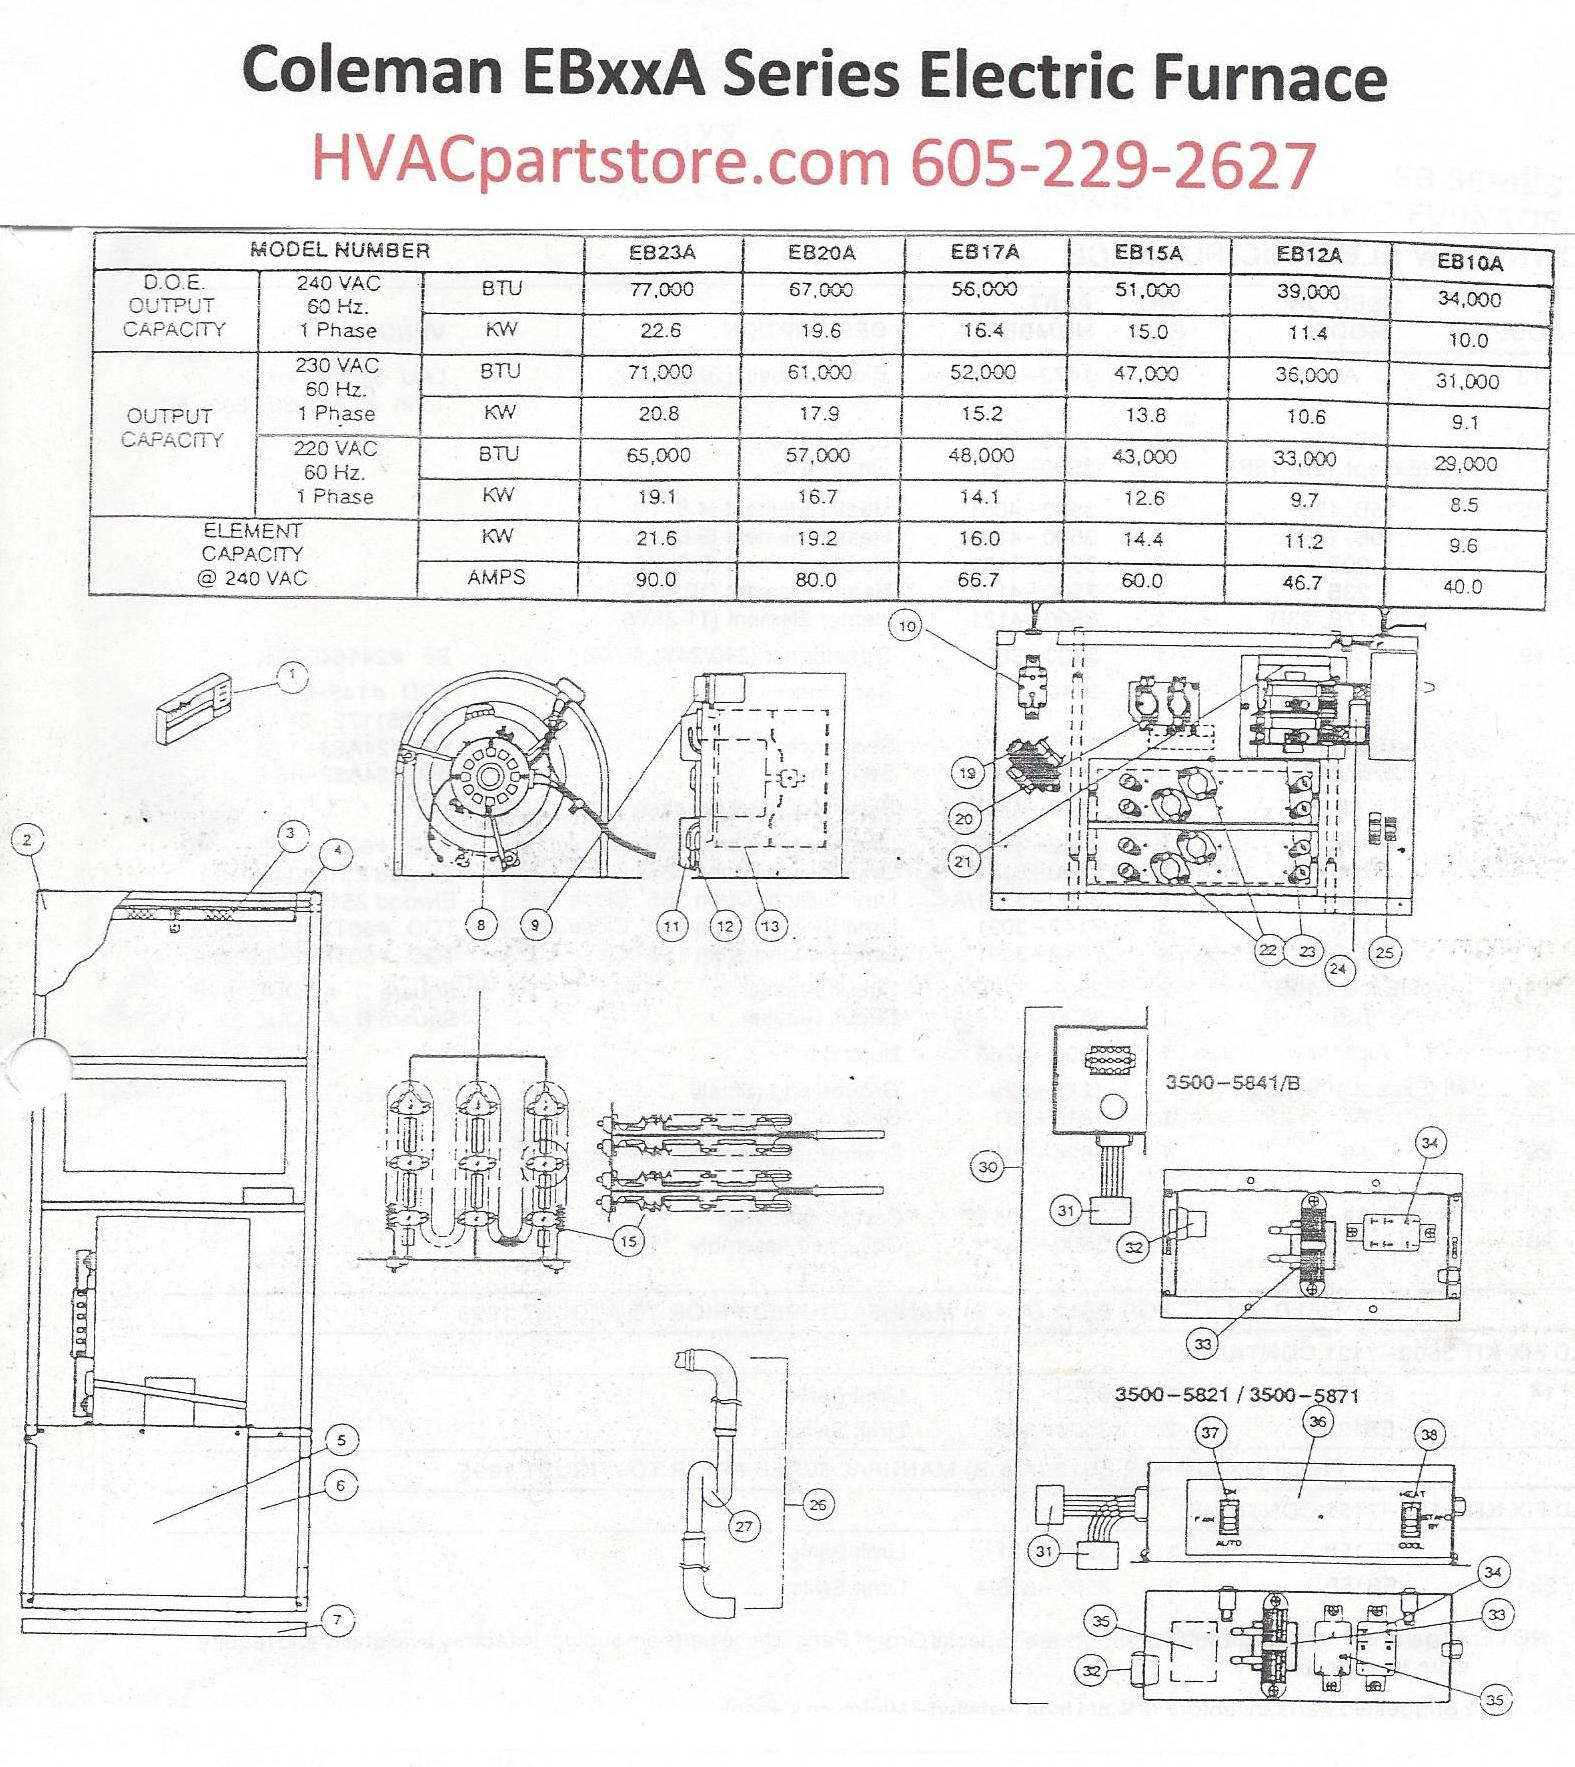 EB23A Coleman Electric Furnace Parts – HVACpartstore